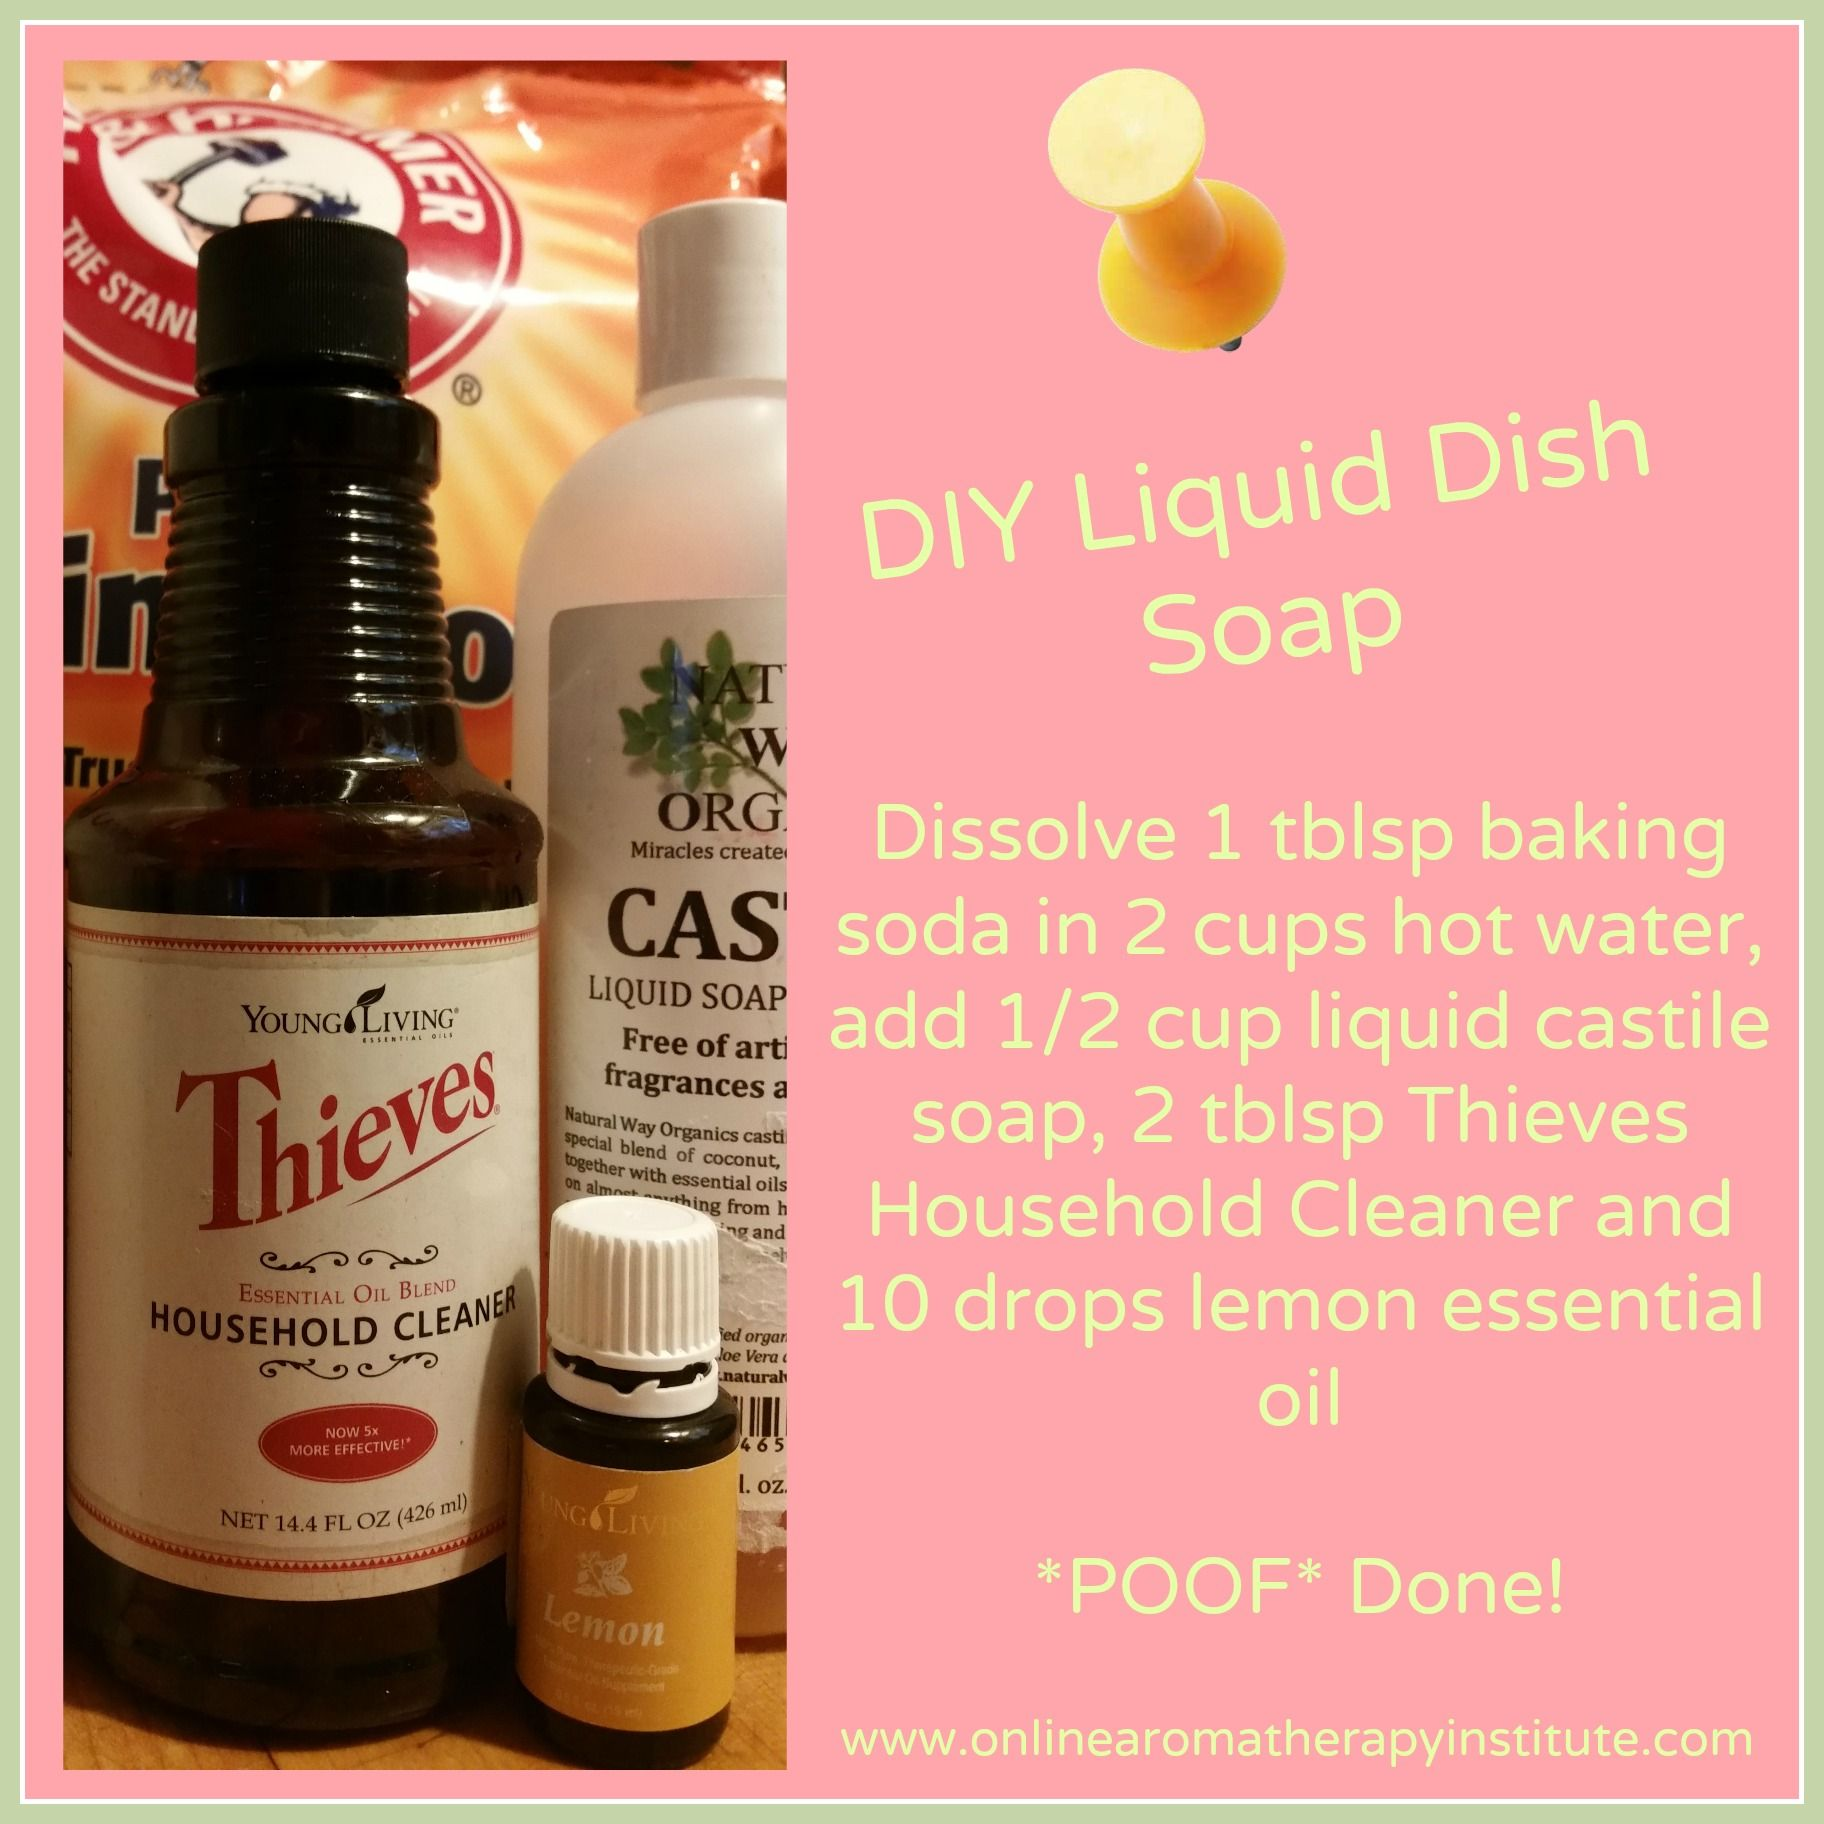 Diy Liquid Dish Soap With Thieves Household Cleaner Essential